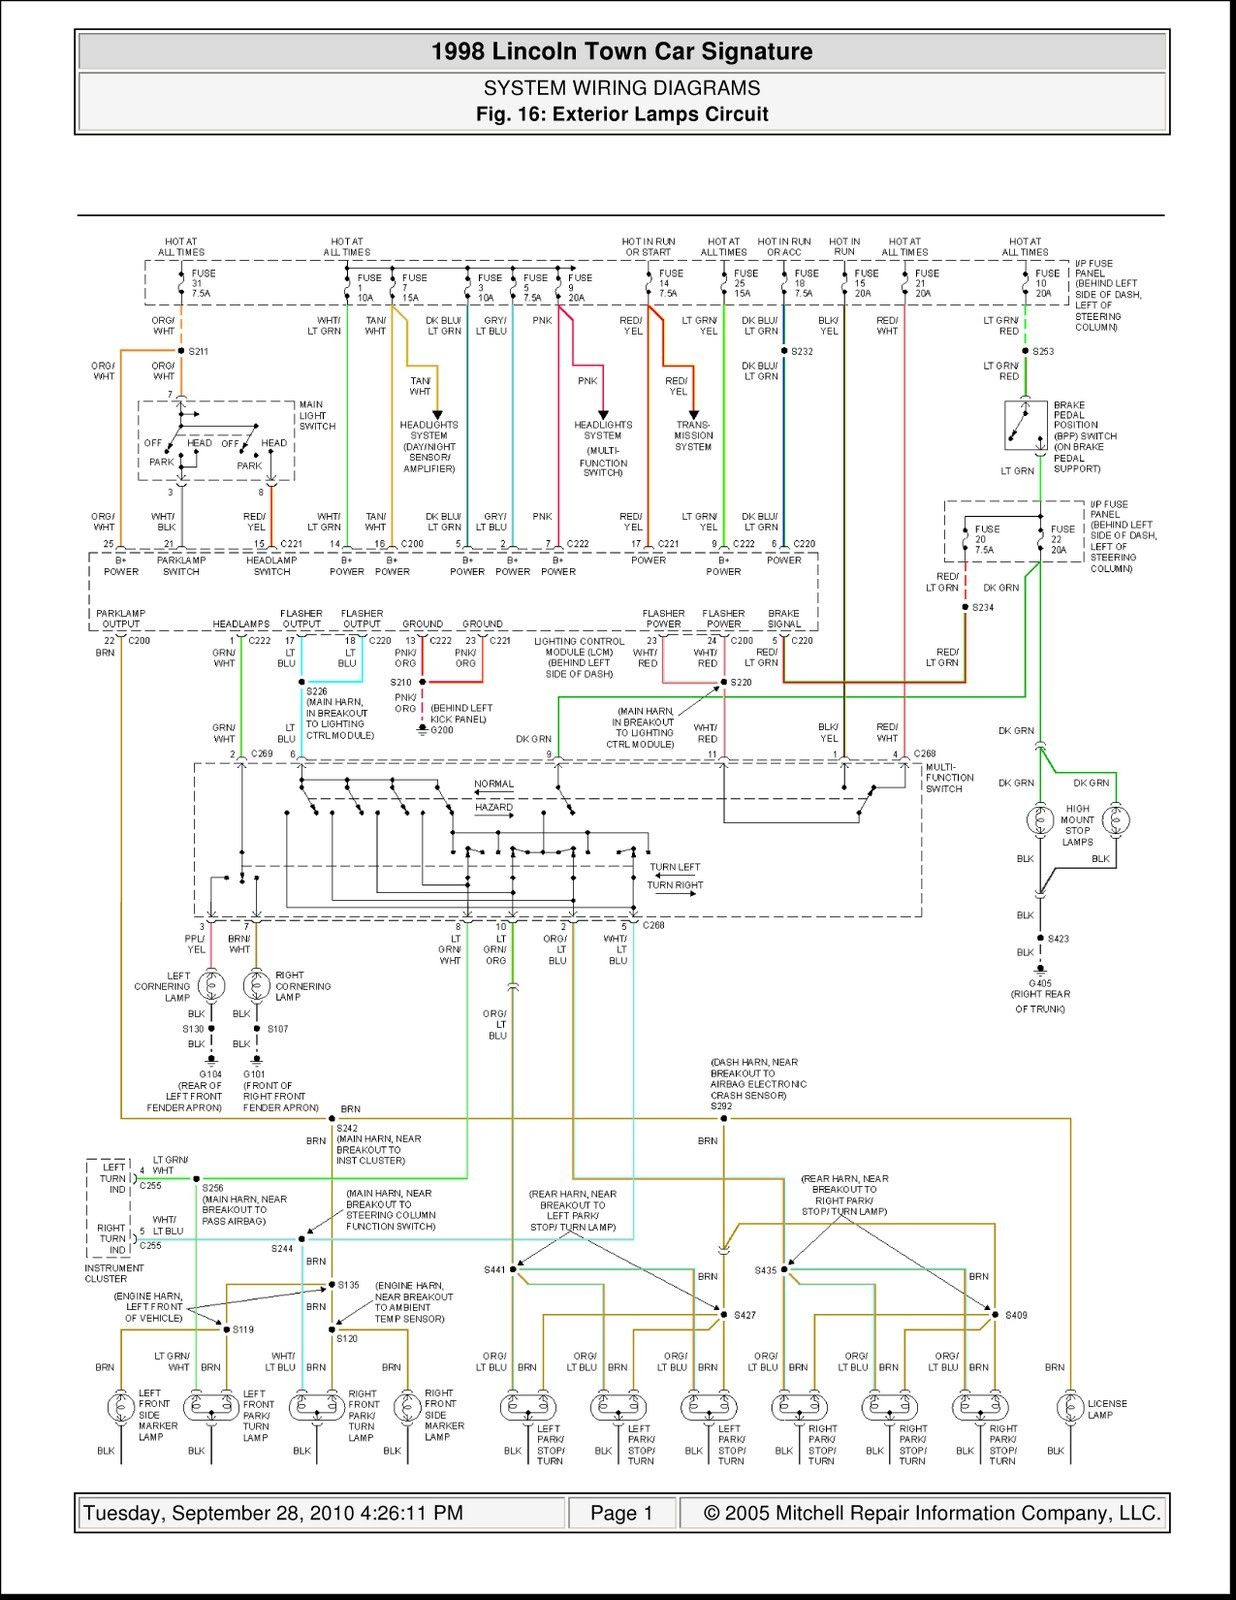 Unique Car Electrical Diagram Diagram Wiringdiagram Diagramming Diagramm Visuals Visualisation Graphical Electrical Diagram Diagram Diagram Design